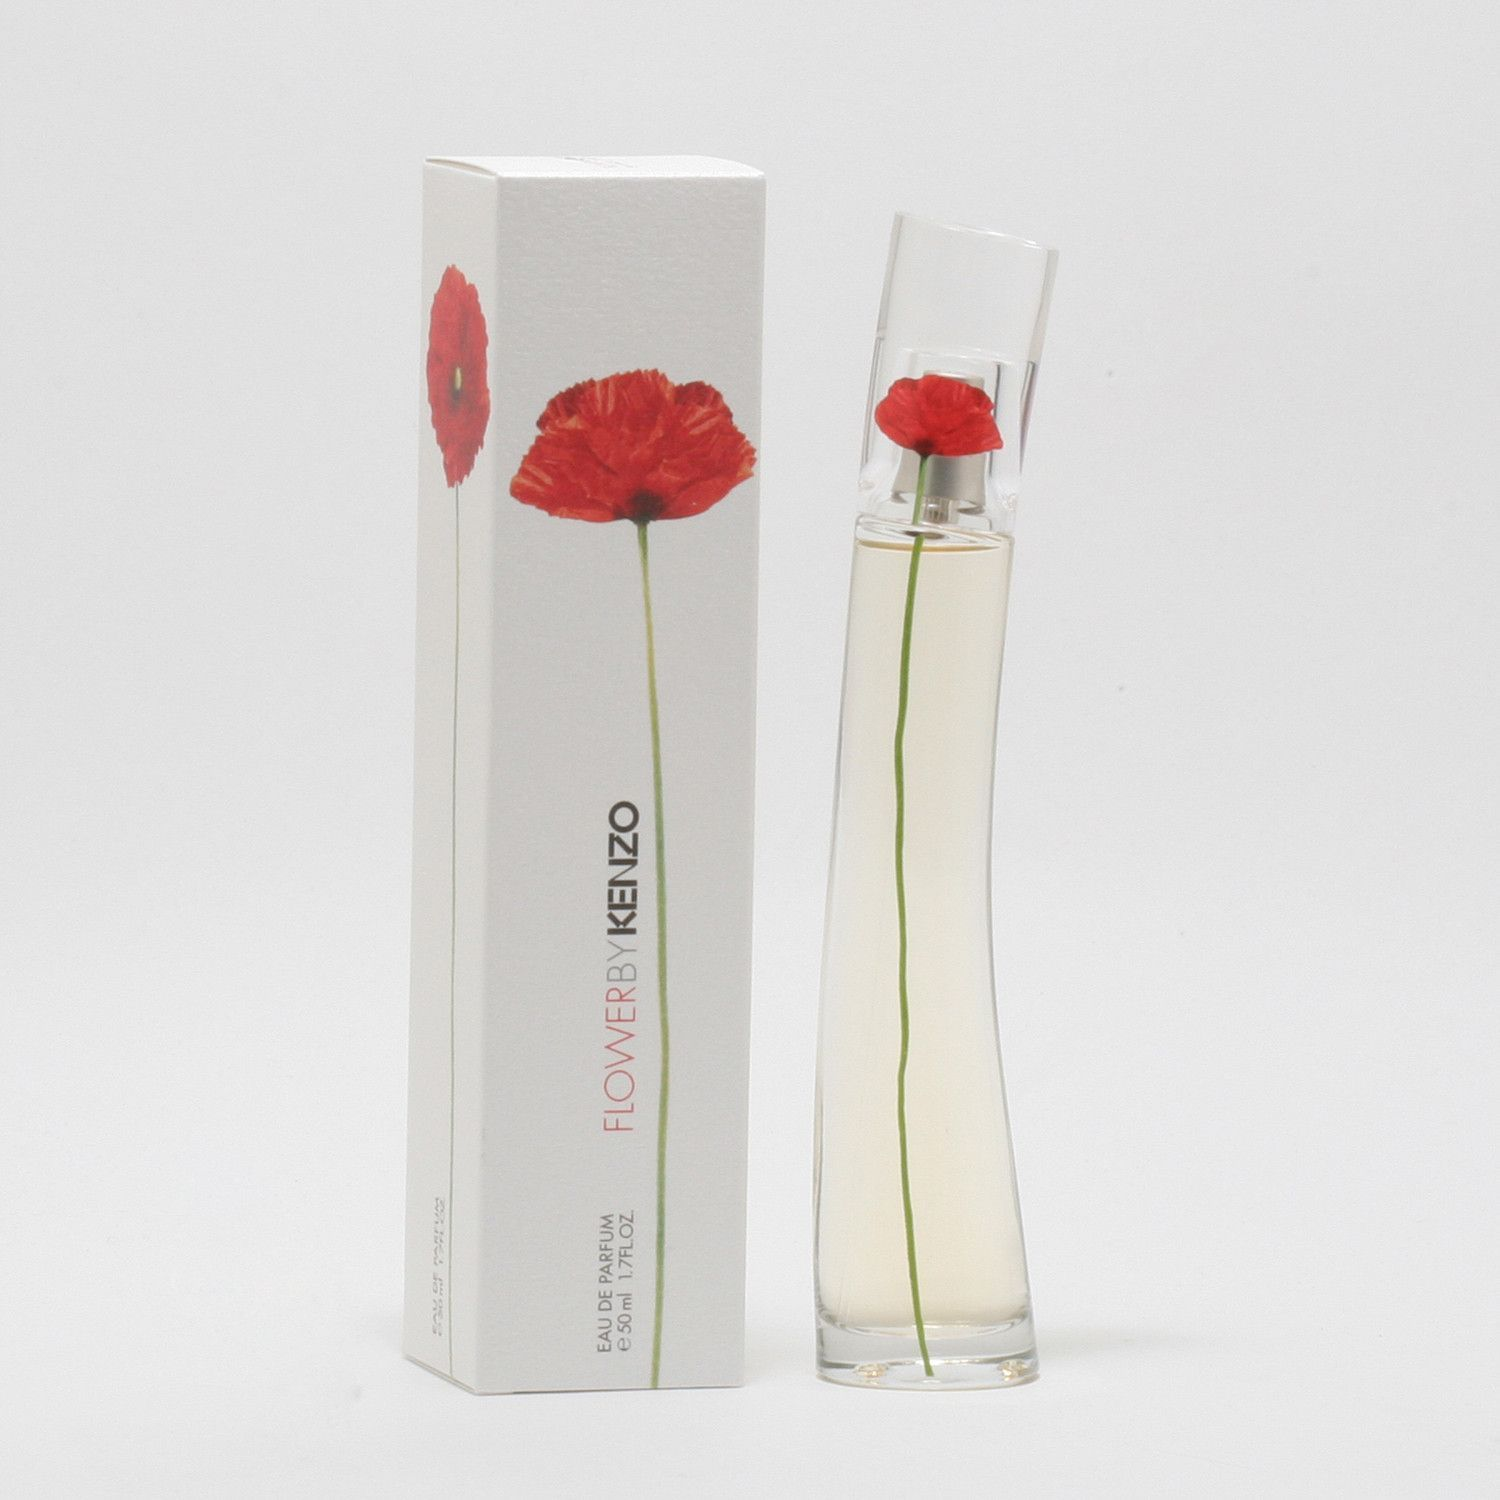 Kenzo Flower By (L) min 4ml edp